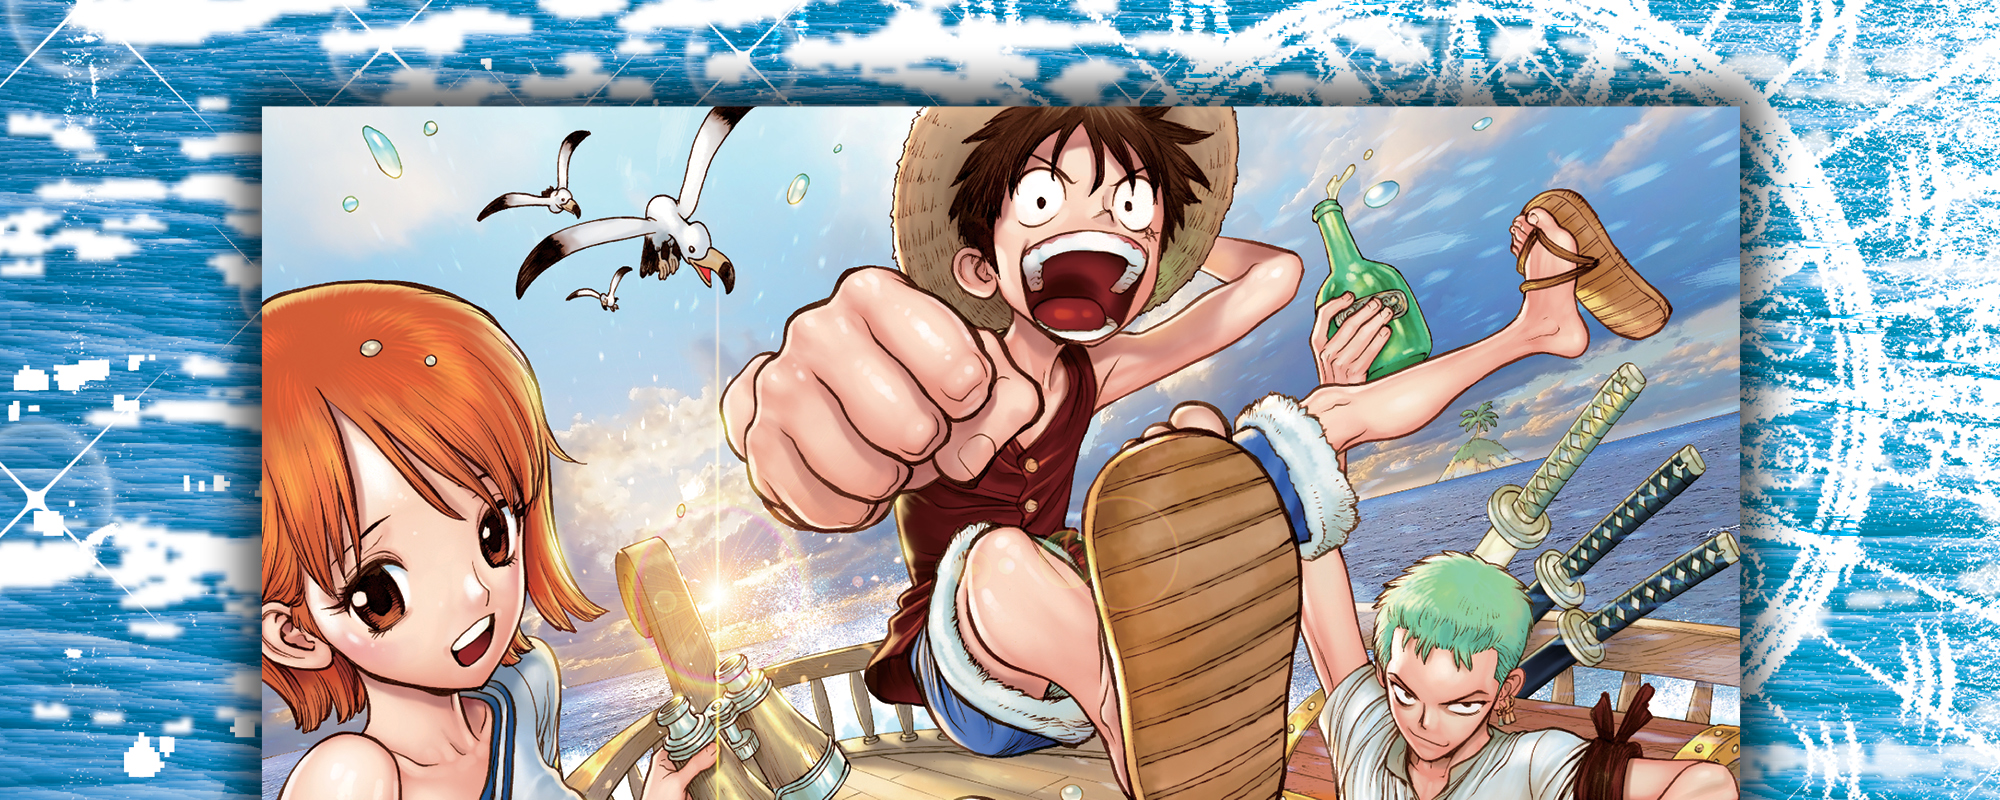 One Piece Chapter 994 Read Online for Free and Legally